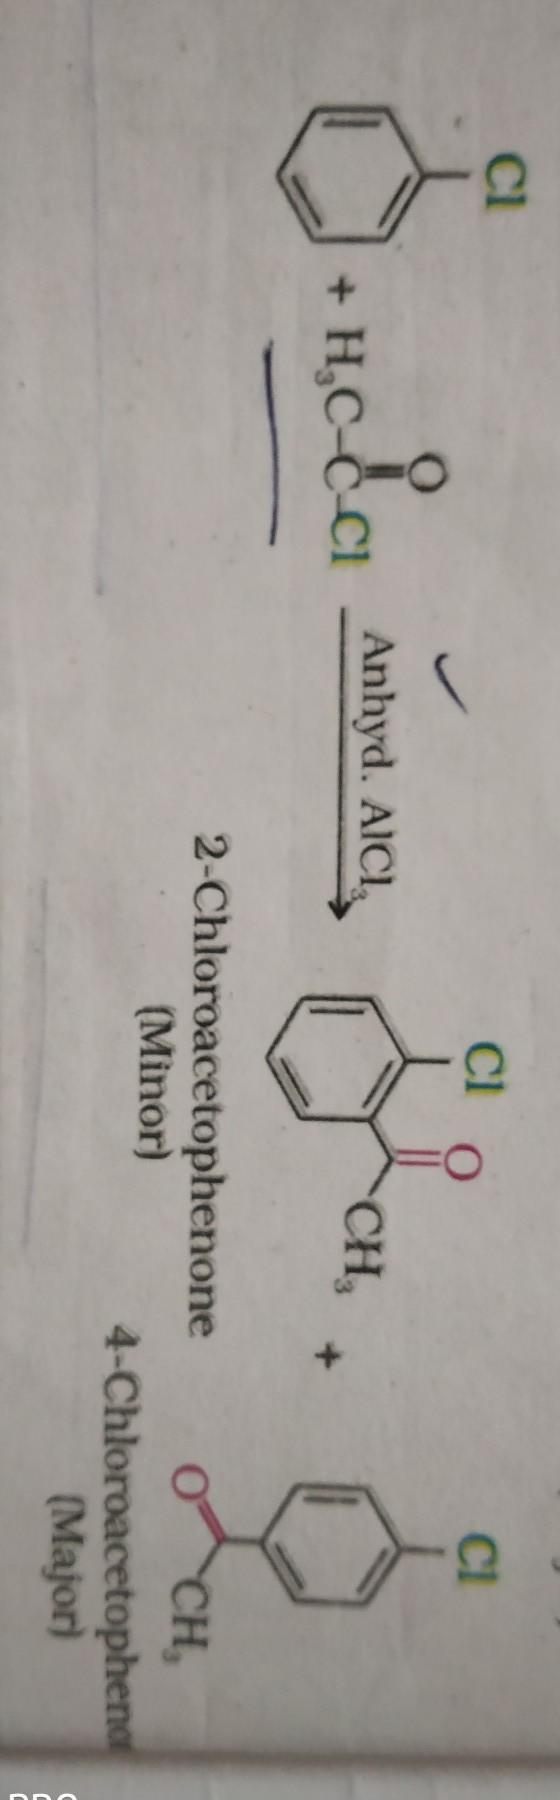 benzene reacts with acetyl chloride in presence of anhydrous